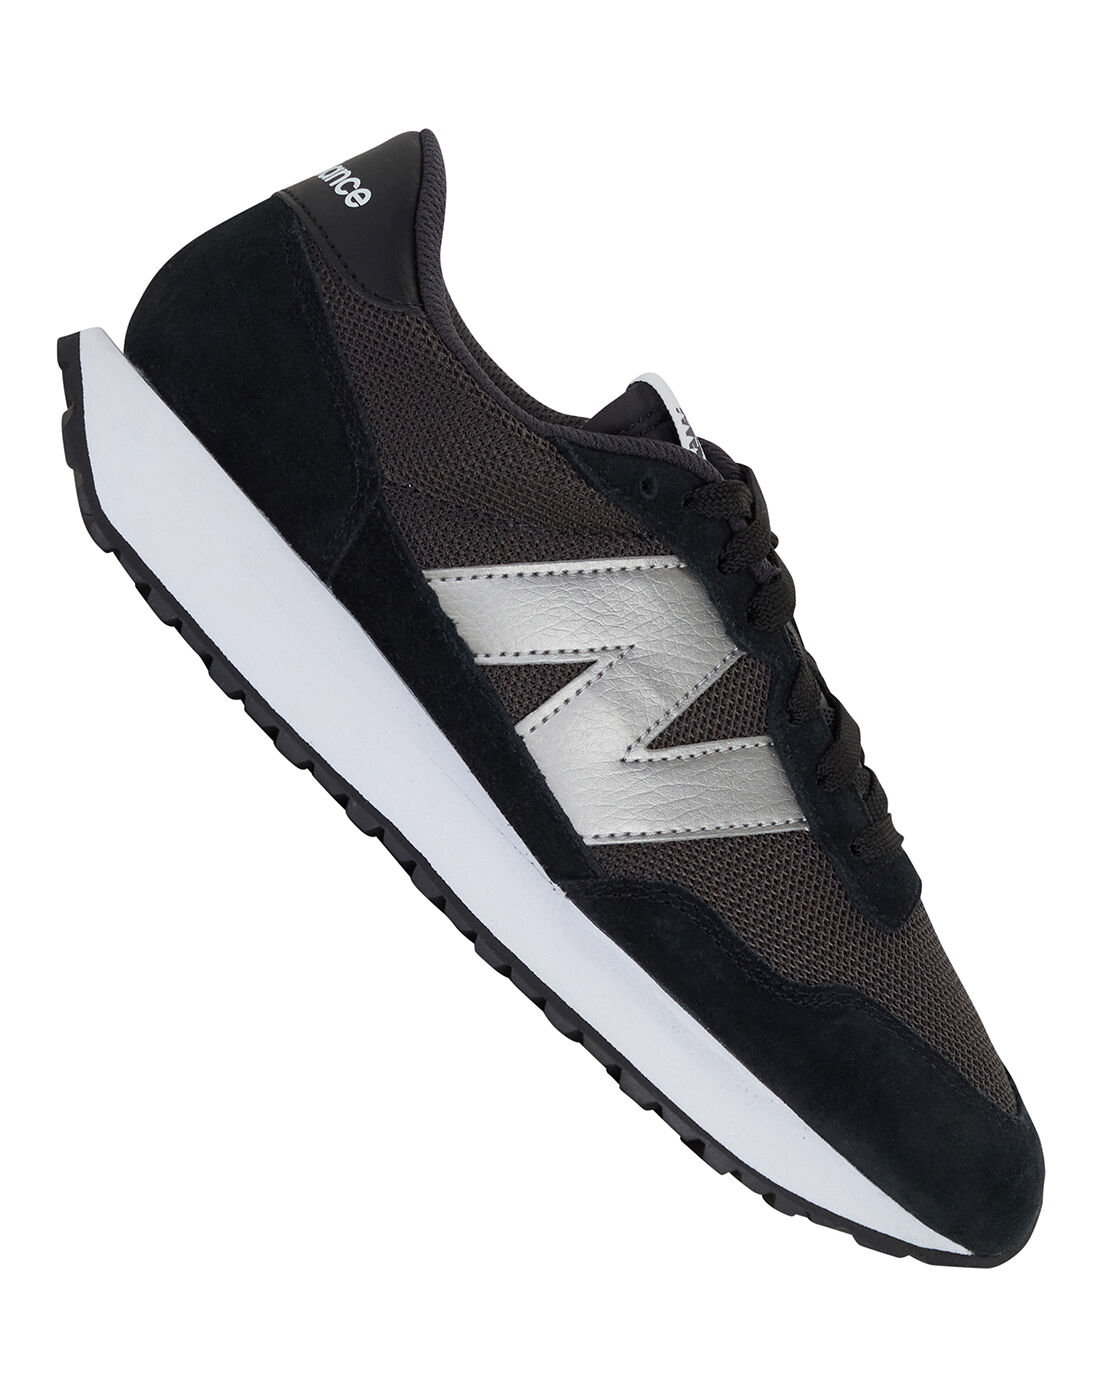 New Balance adidas high top dance shoes for women amazon | Womens 237 Trainer